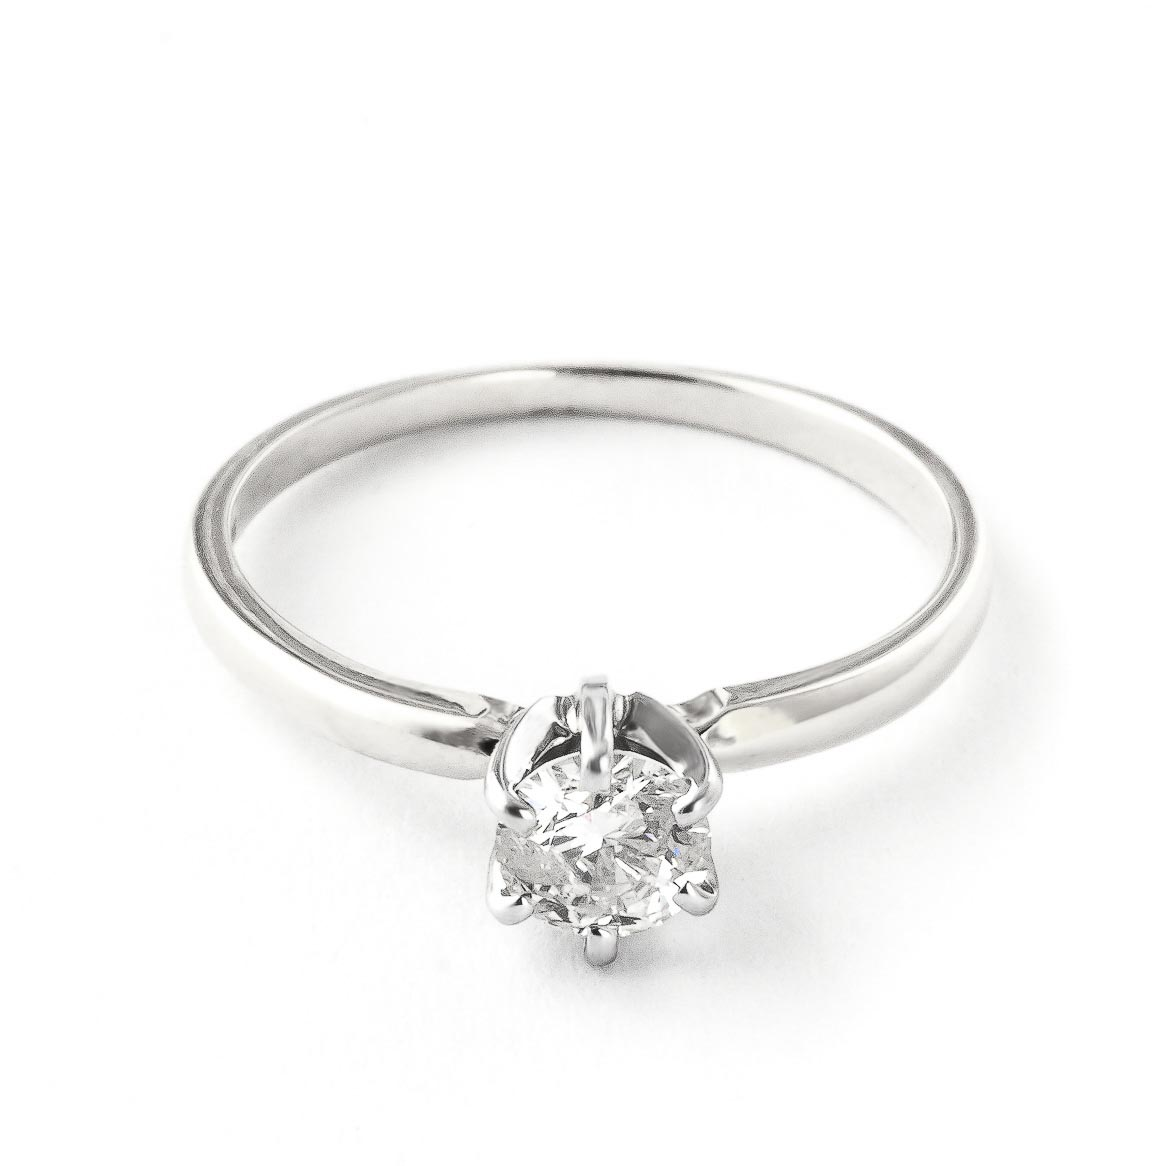 Diamond Solitaire Ring 0.4 ct in 18ct White Gold